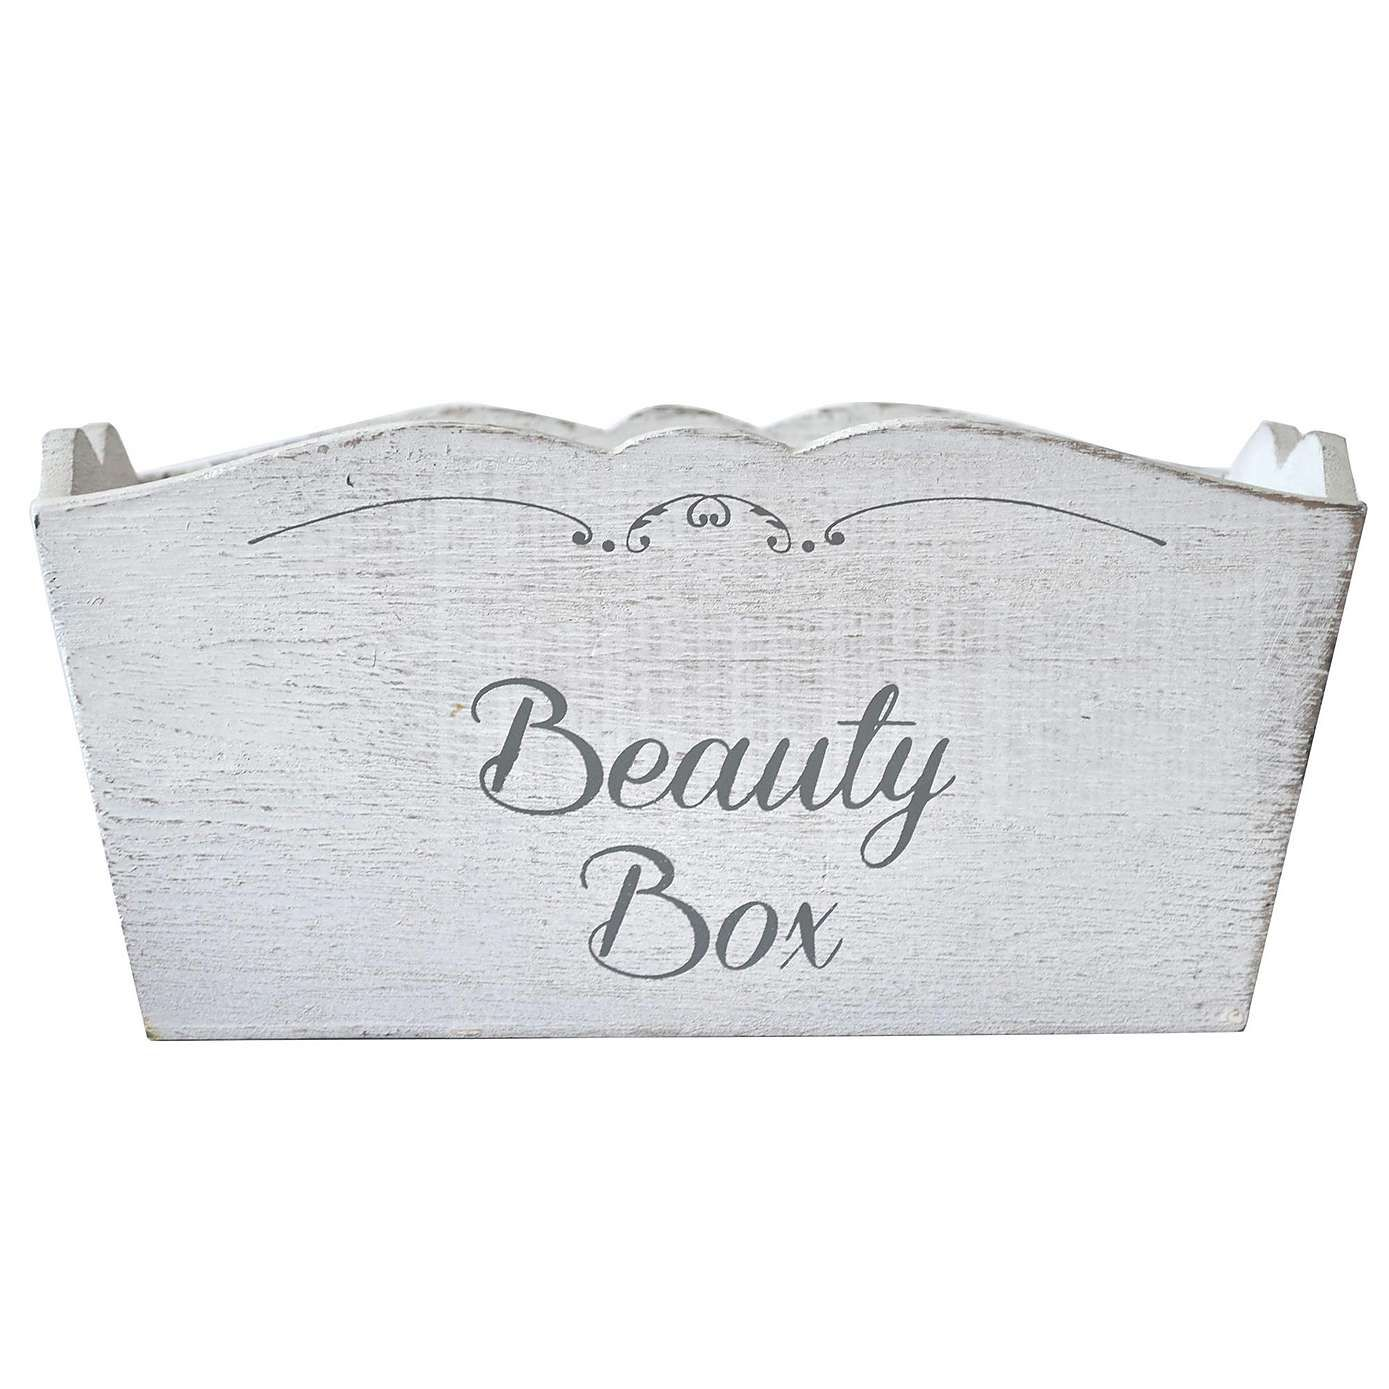 Dunelm Bathroom Accessories White Wash Wooden Beauty Box Dunelm 10 Shabby Chic Gifts For